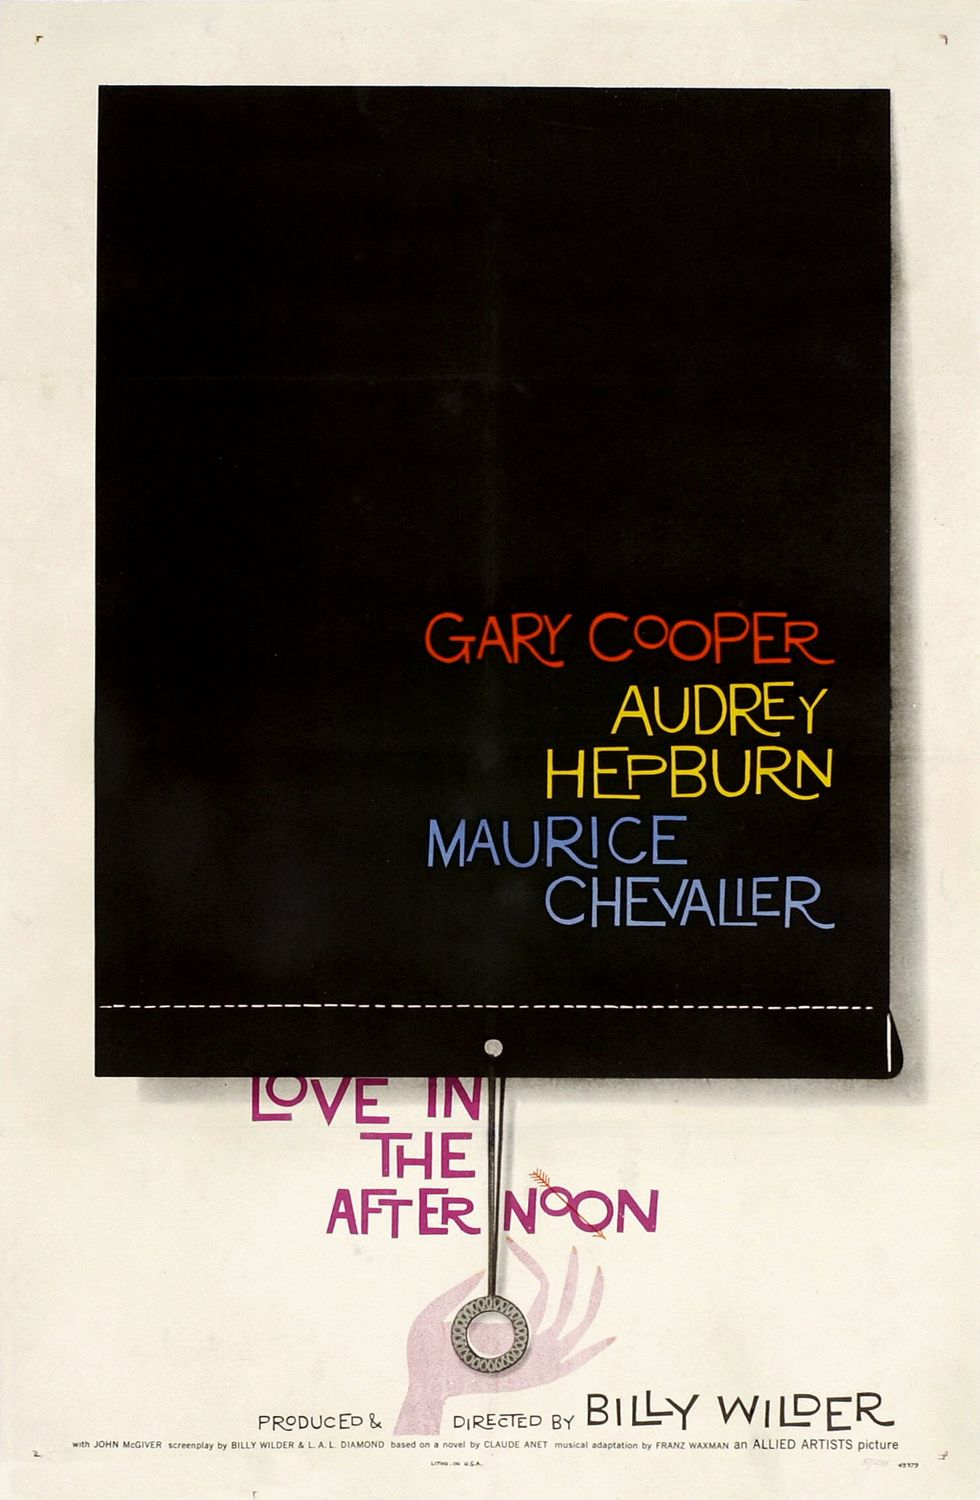 Love in the Afternoon (1957 film) - Wikipedia